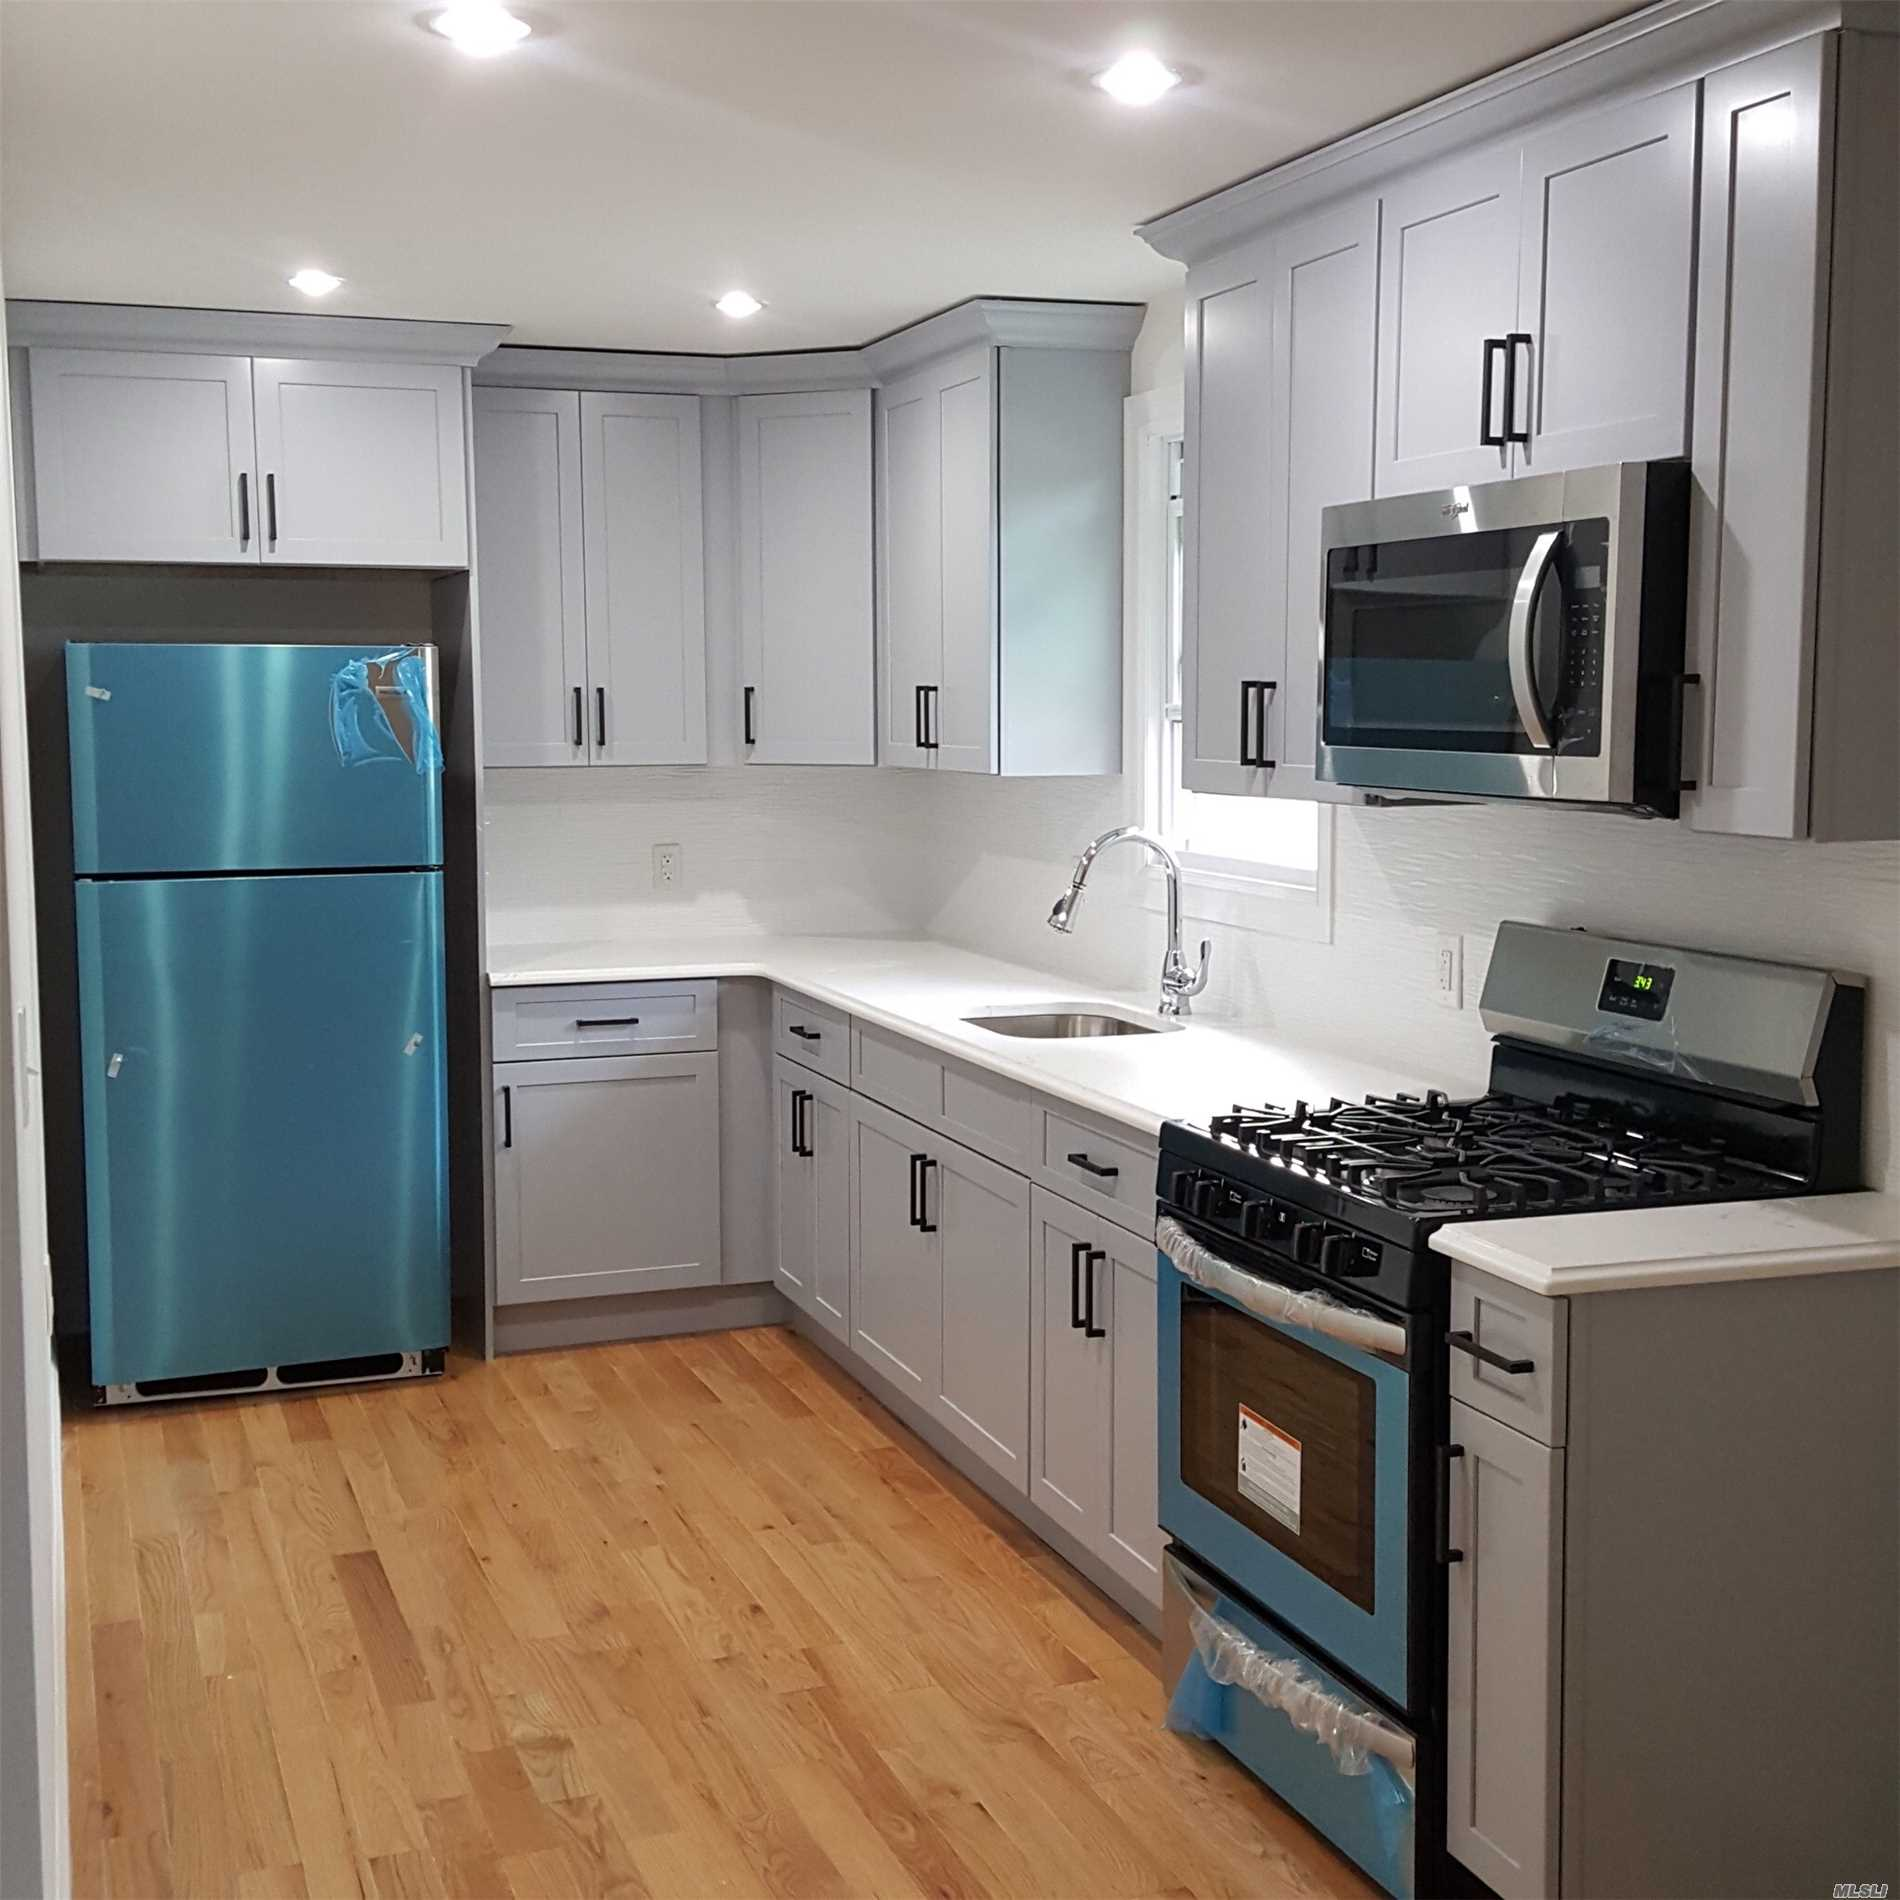 Newly Renovated 3 Large Bedrooms With 2 Full Baths, Master Bedroom W/ Bath Suite, Large Closets, Grainte Counter, Stainless Steel Appliances, Separate Side Entrance. Parking On Street. Great Neighborhood, Near Schools, And Major Hwy.